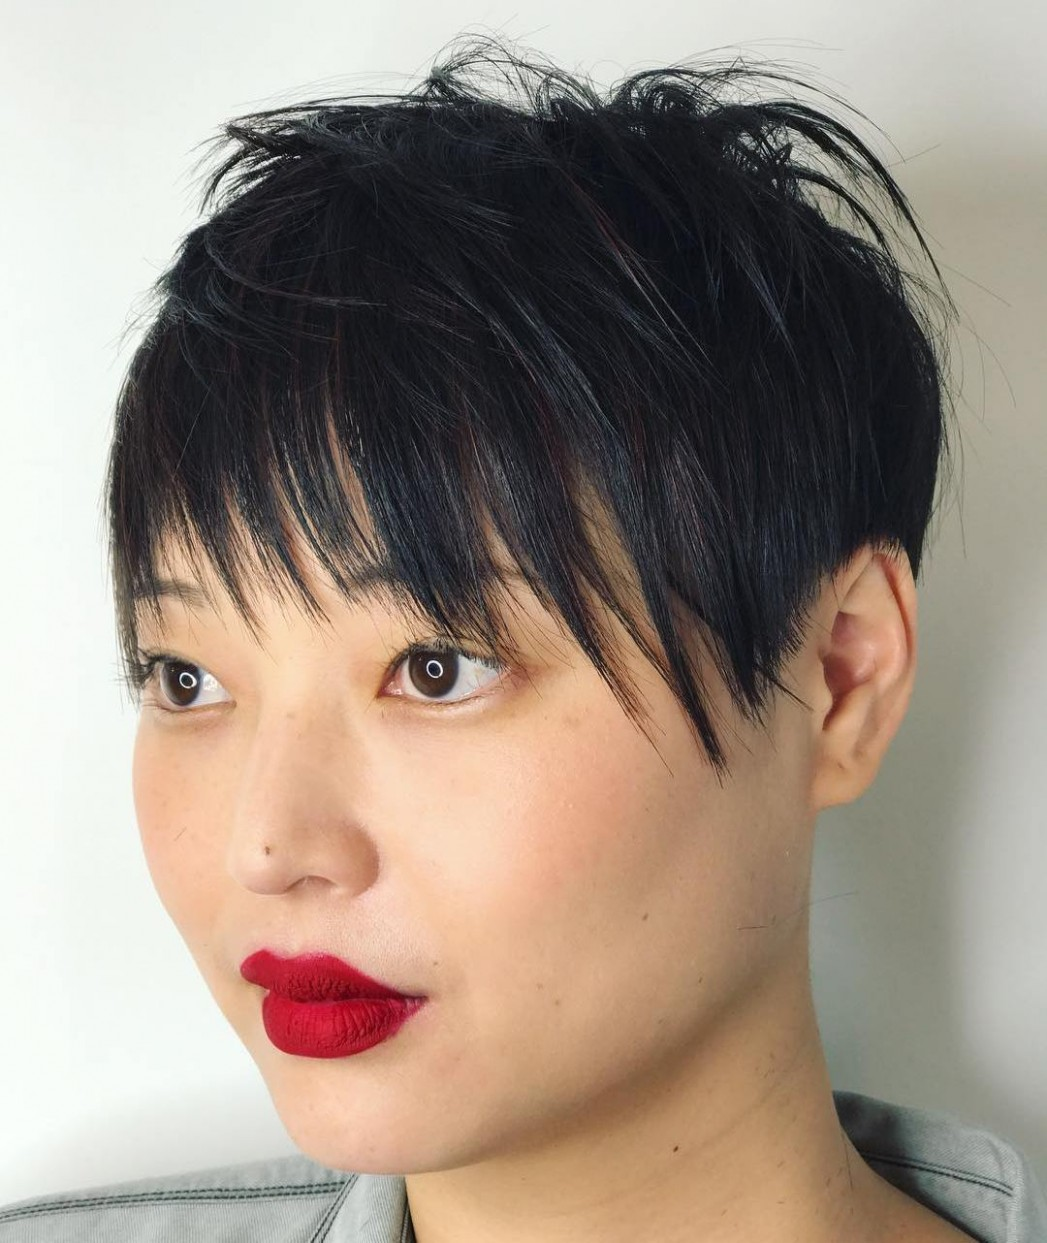 8 Short Hairstyles For Round Faces With Slimming Effect Hadviser Asian Round Face Haircut